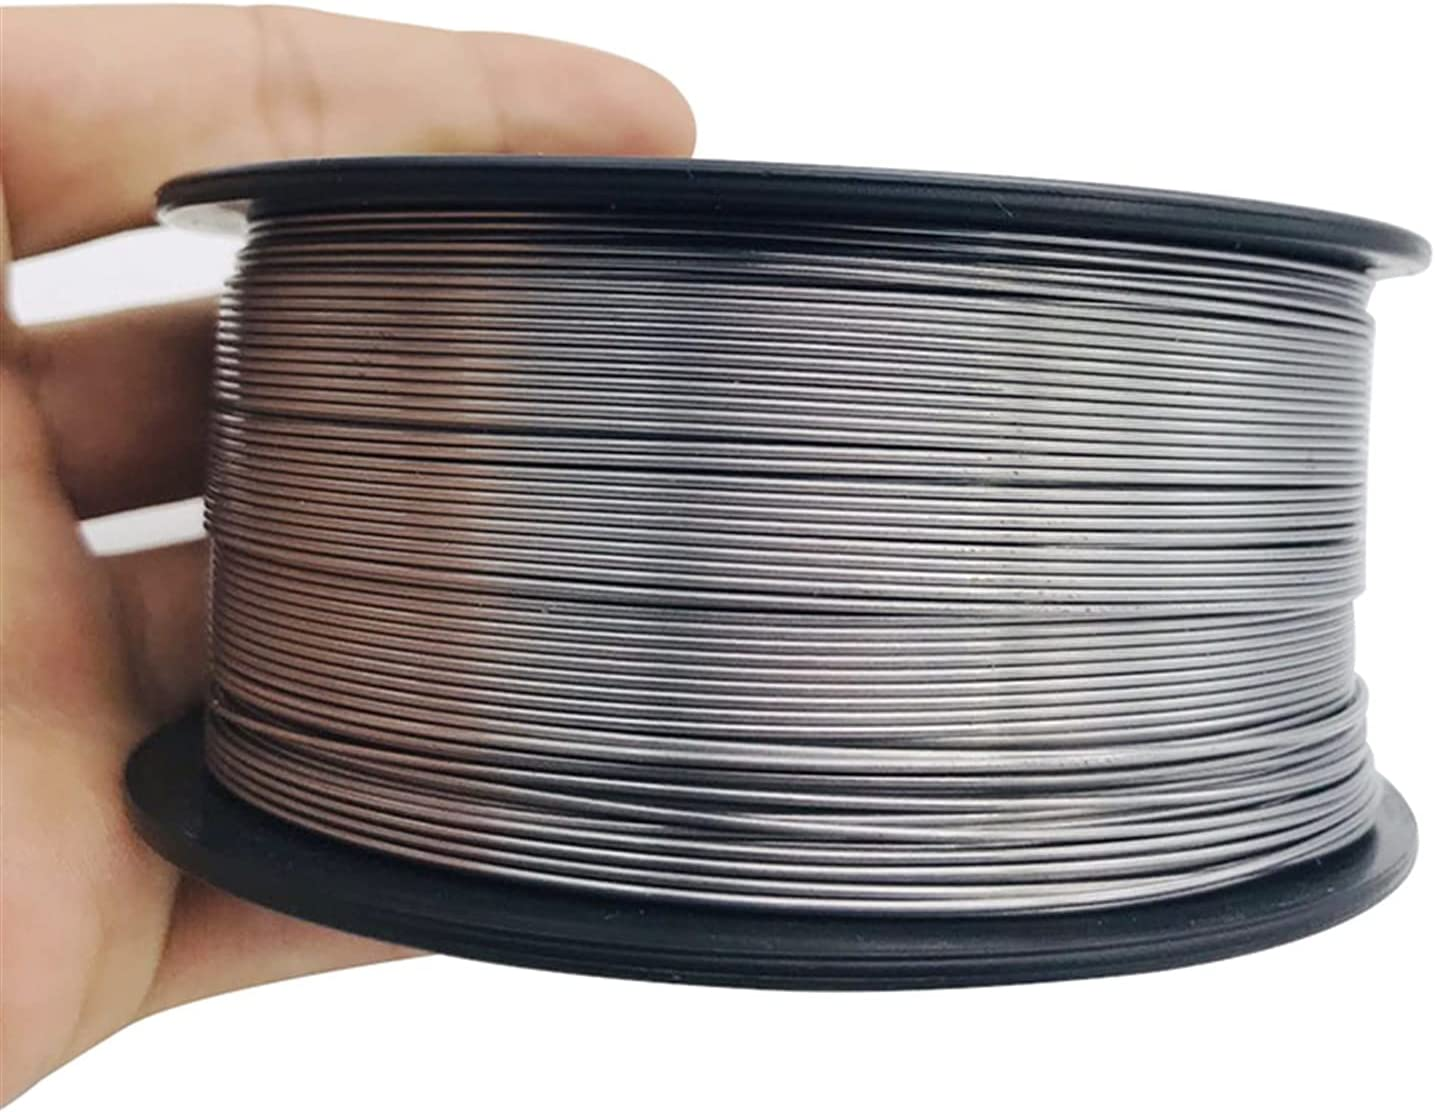 Chendawei Sxiaoxia-Welding Wire 0.8 Finally Inexpensive resale start 0.9 1.0 Gasless 1.2mm W Mig